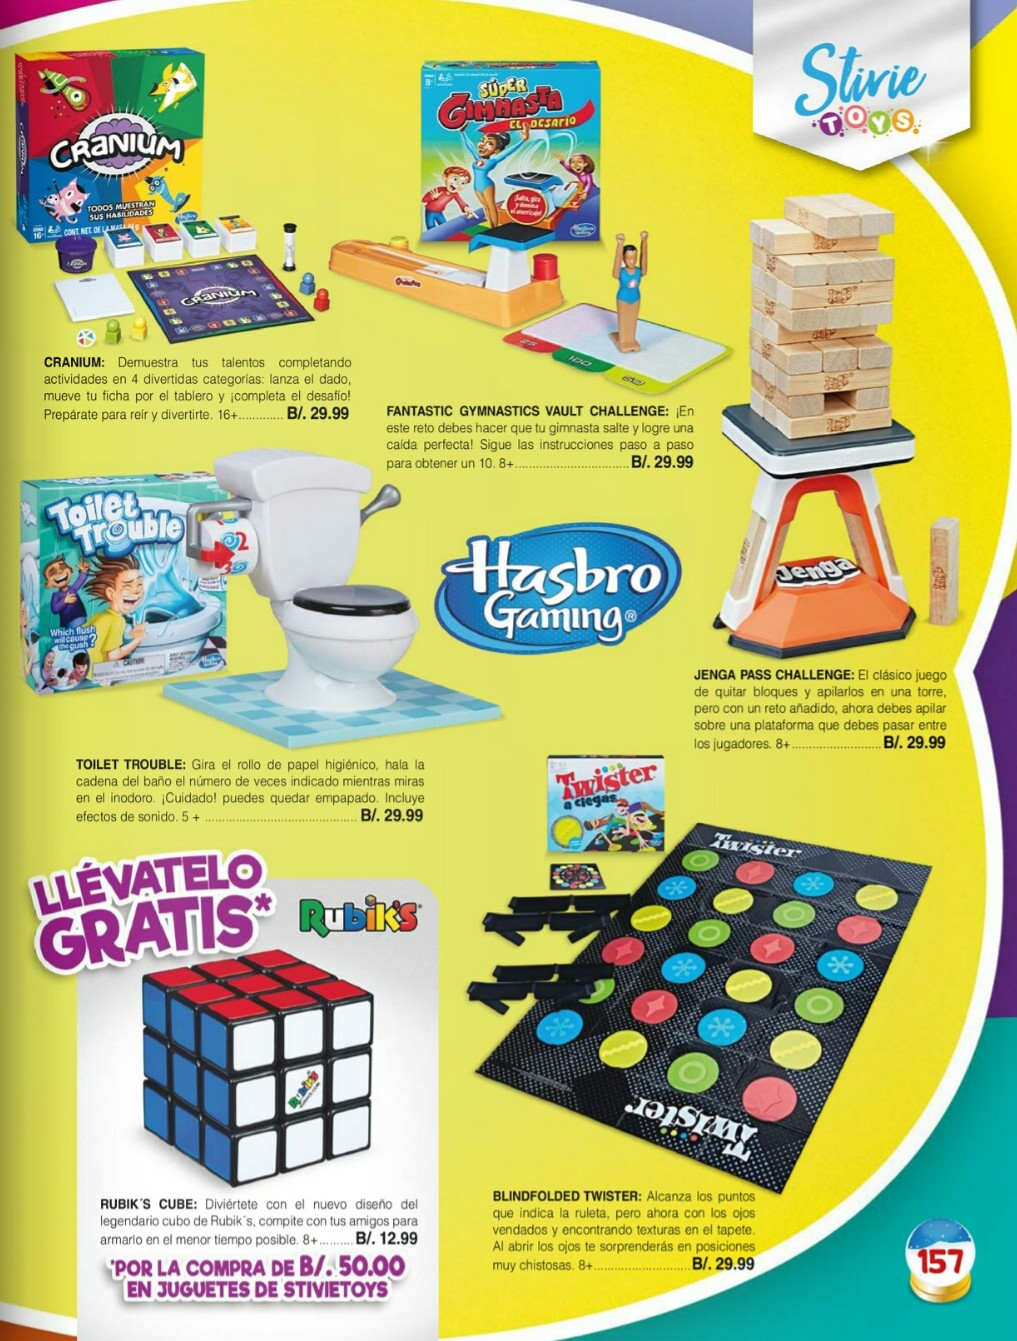 Catalogo juguetes Stivie toys 2018 p157